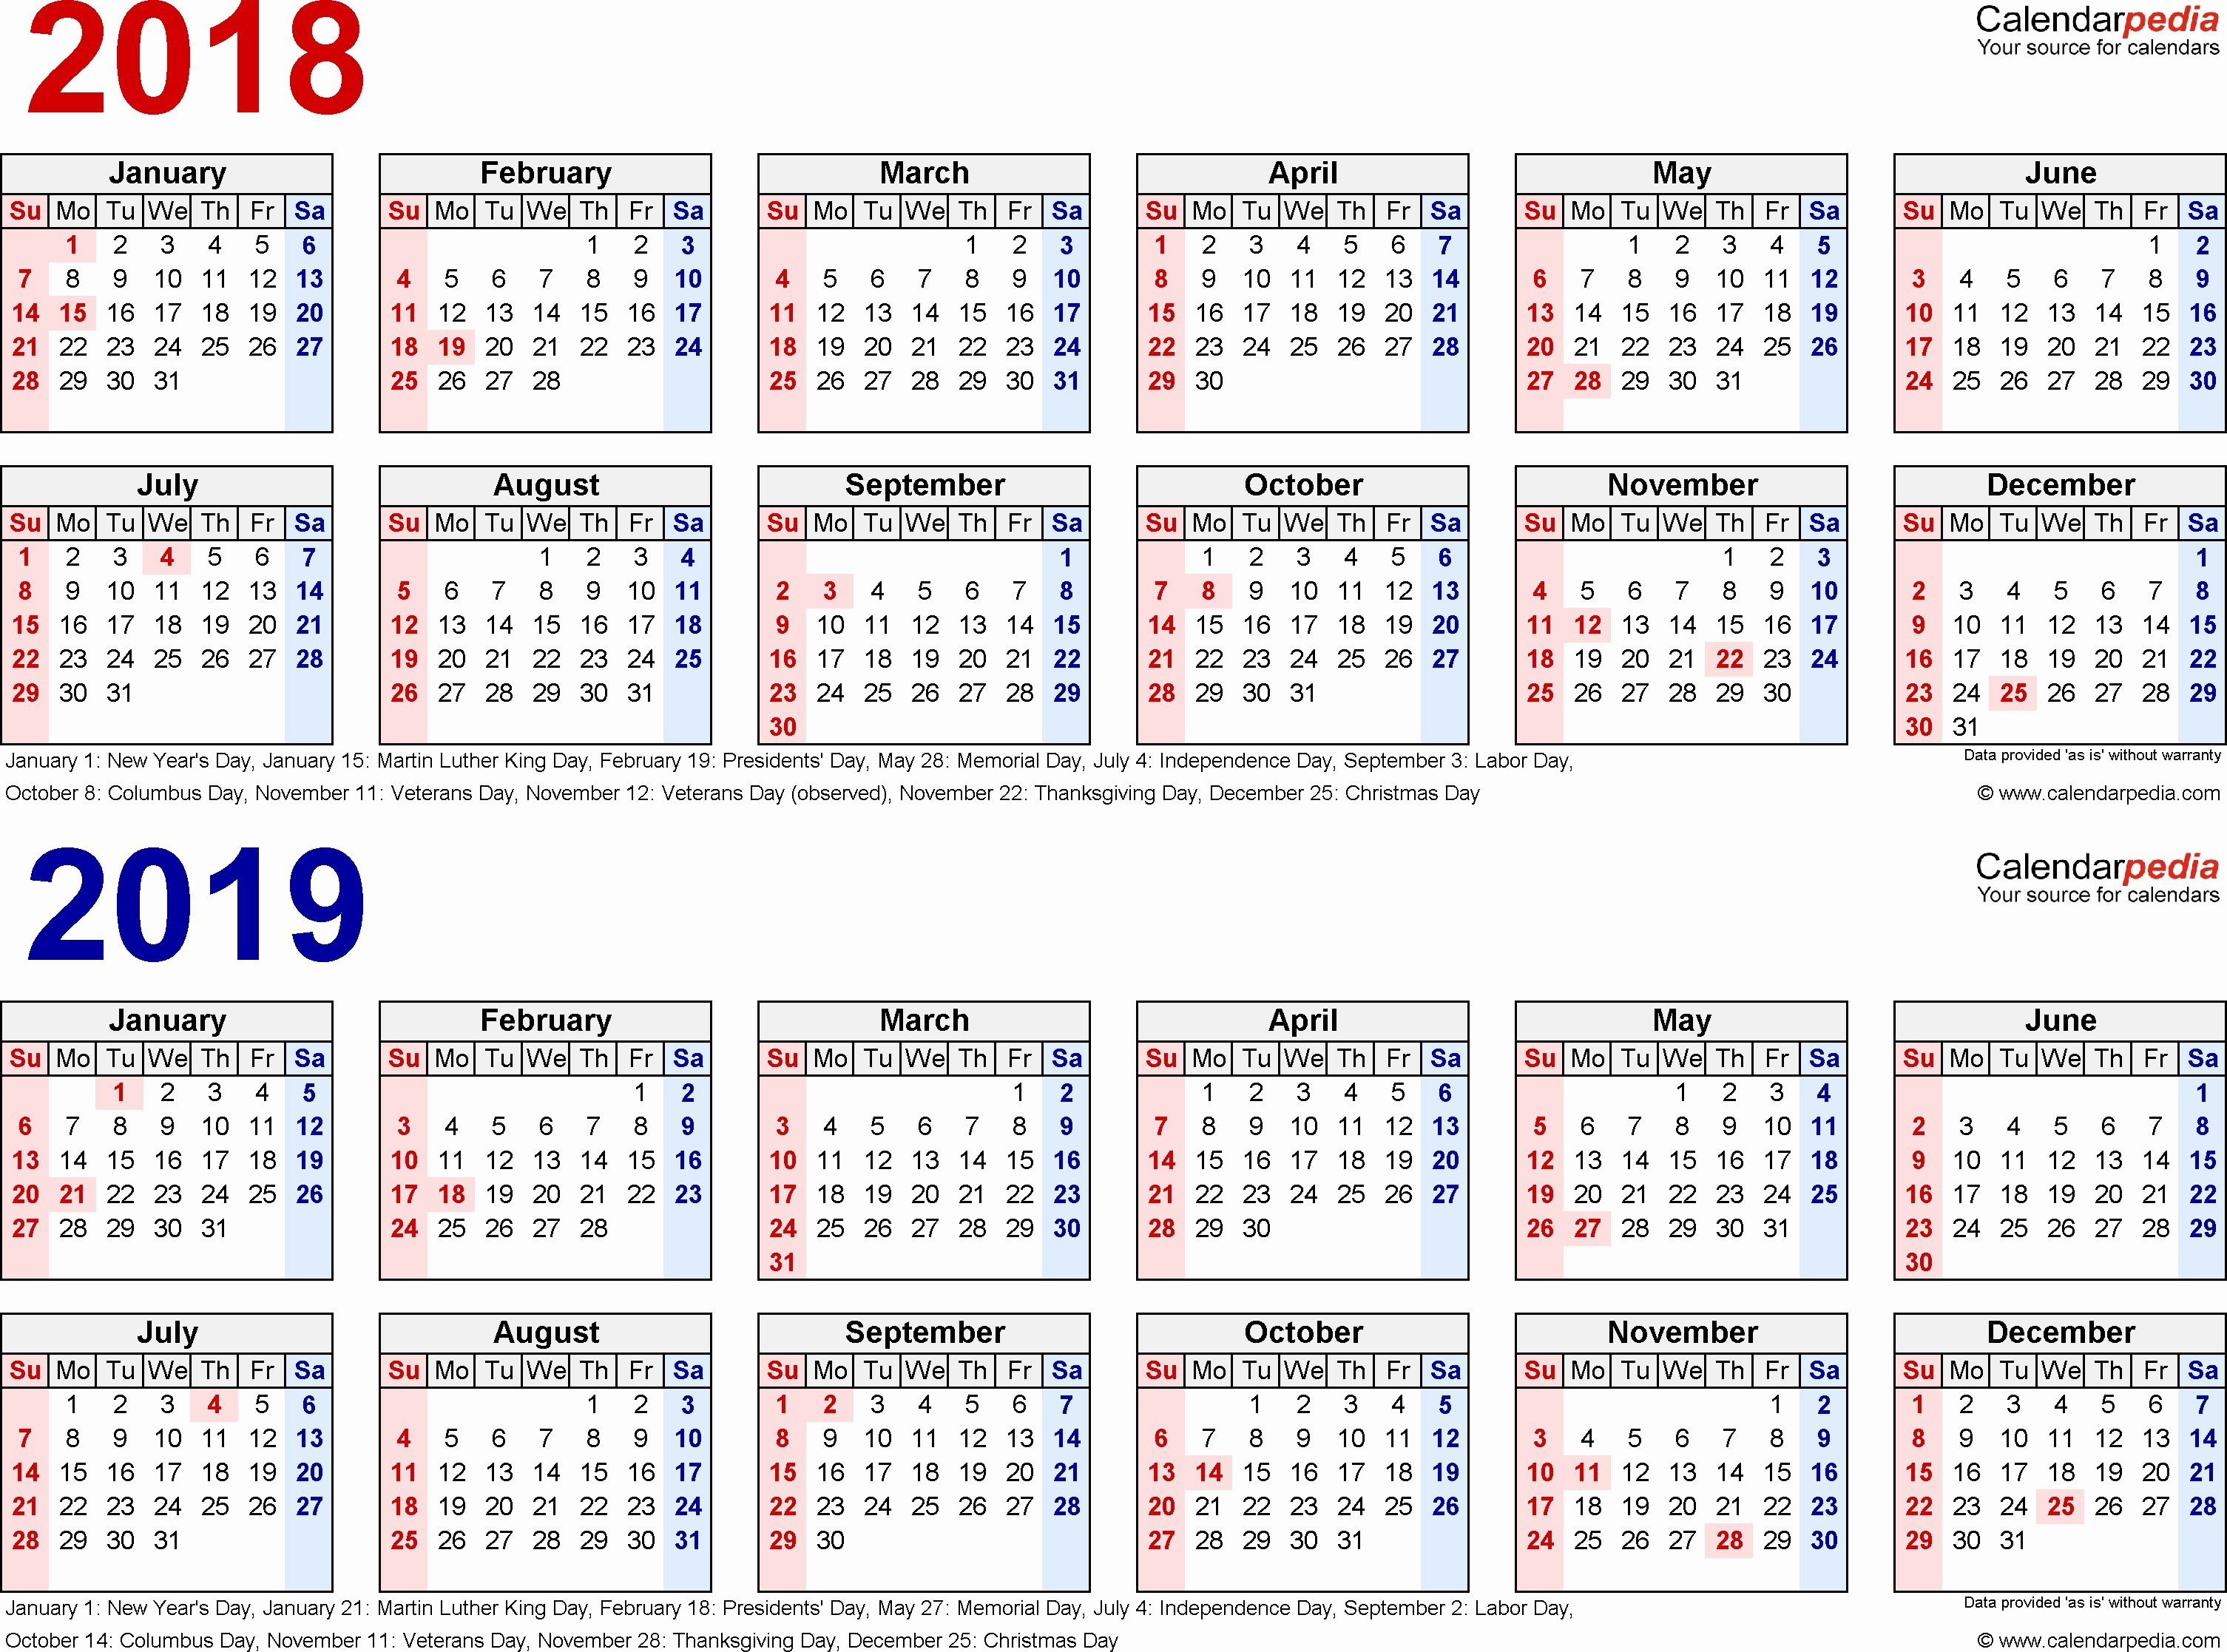 March 6 Calendar Actual March 24 2019 Calendar Of March 6 Calendar Más Recientes 2018 Calendar with Julian Dates Sample 2017 Calendar with Julian